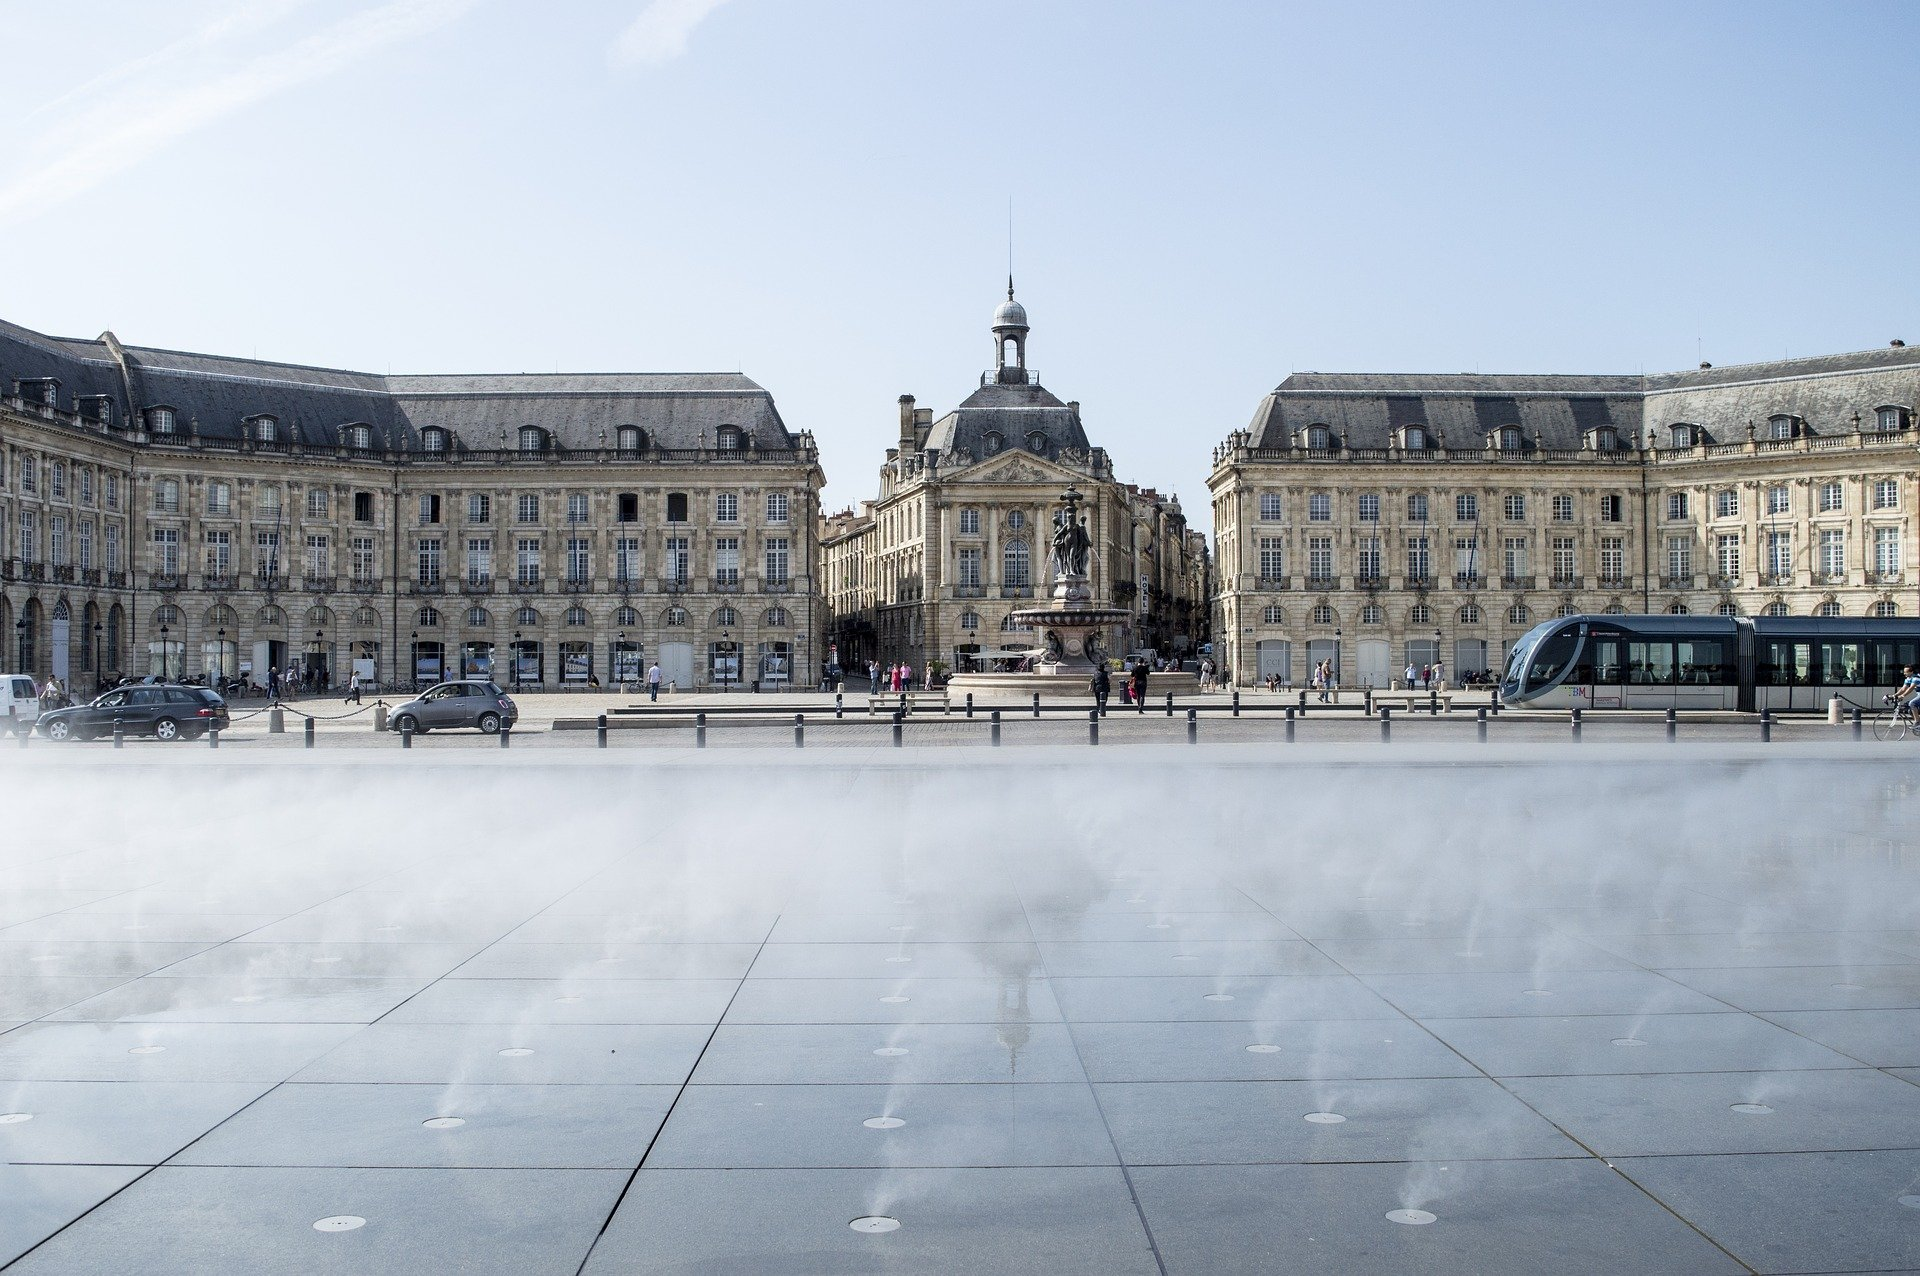 The famous reflecting water mirror in front of place de la Bourse in Bordeaux